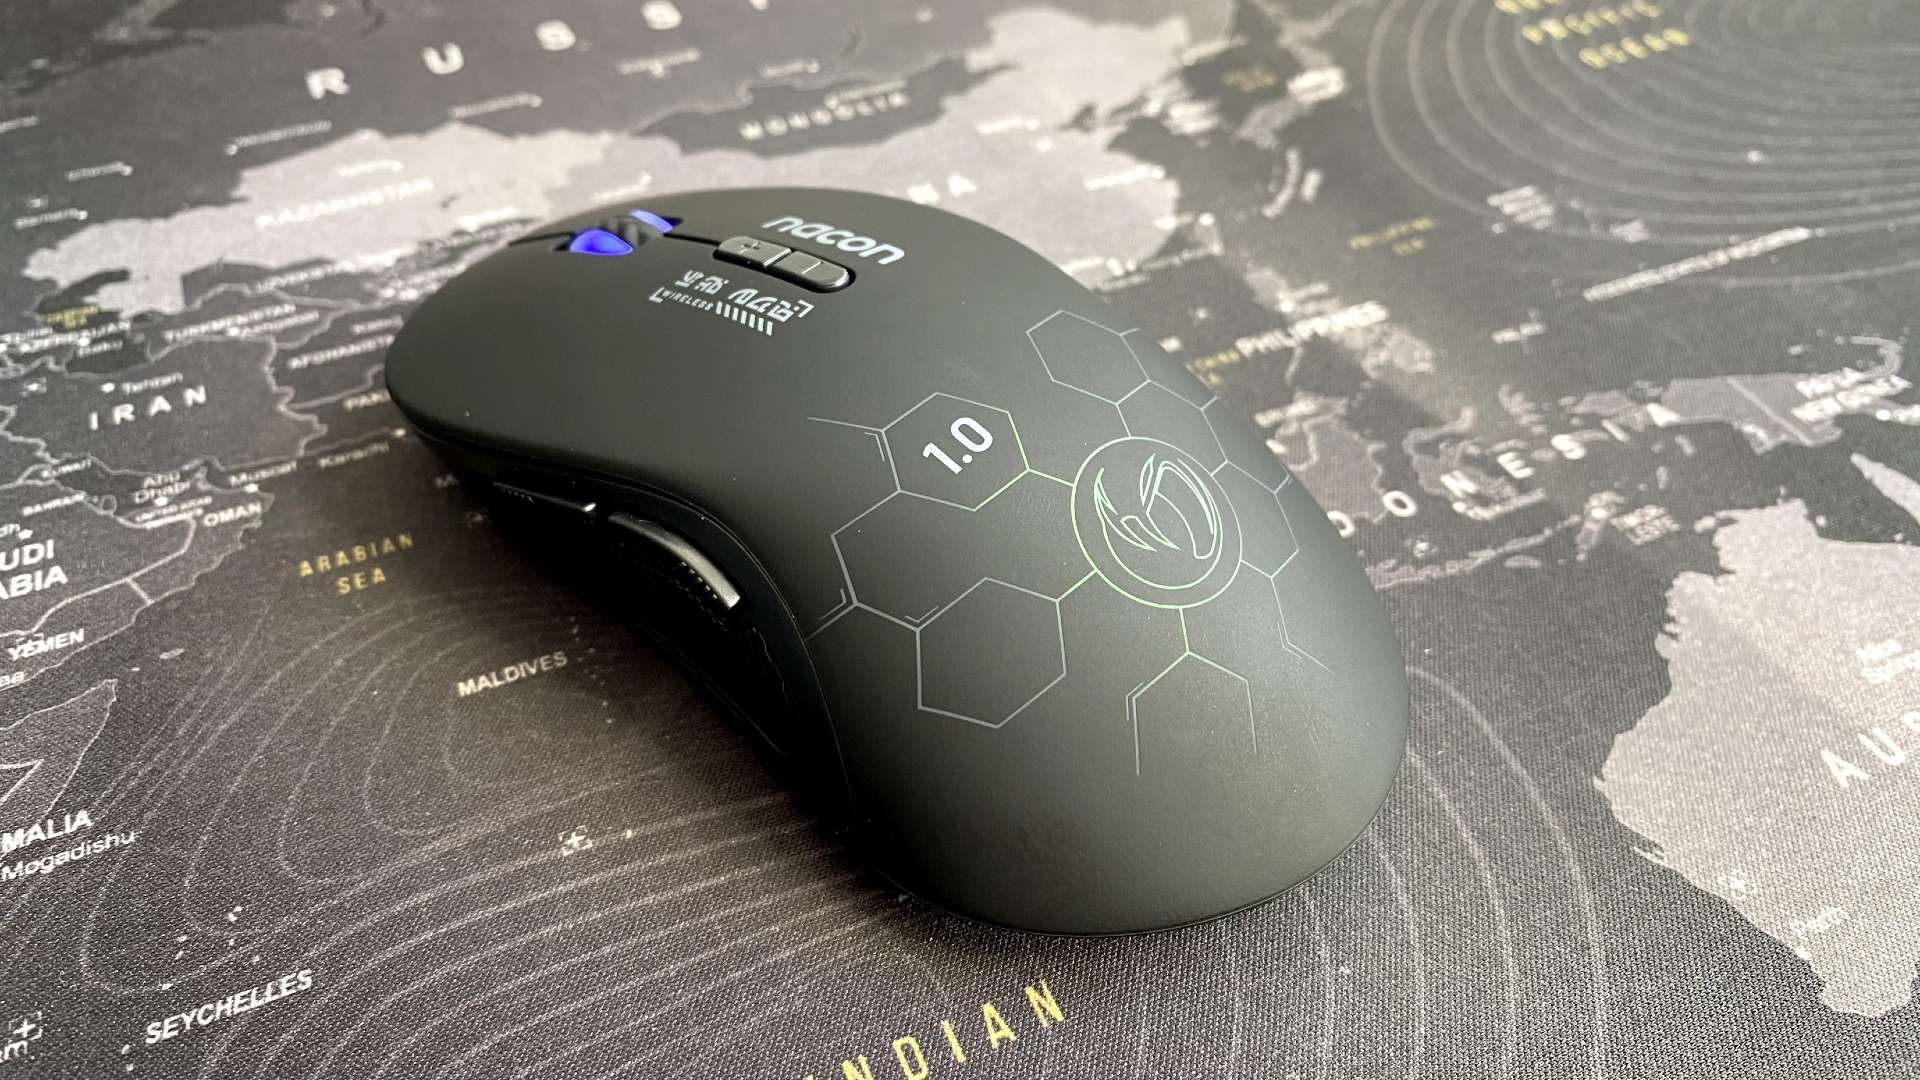 Nacon GM-180 wireless mouse review – a budget cordless option